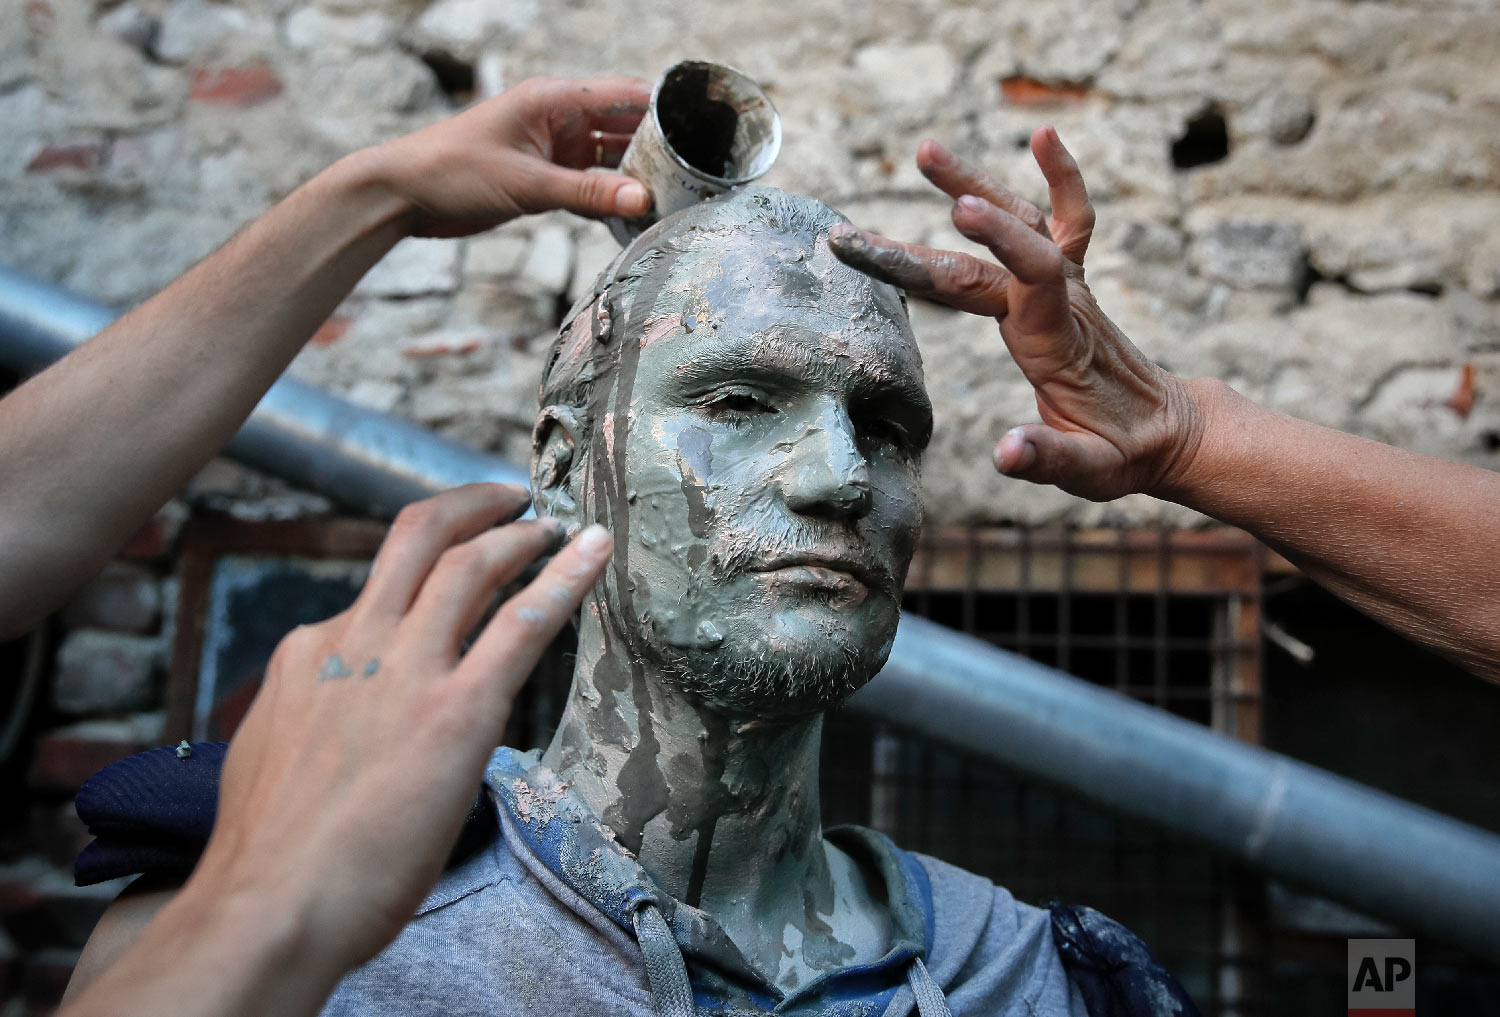 An artist of Romania's Masca theatre has make-up applied to his face before performing at the Living Statues International Festival, in Bucharest, Romania on Tuesday, May 22, 2018,. (AP Photo/Vadim Ghirda)